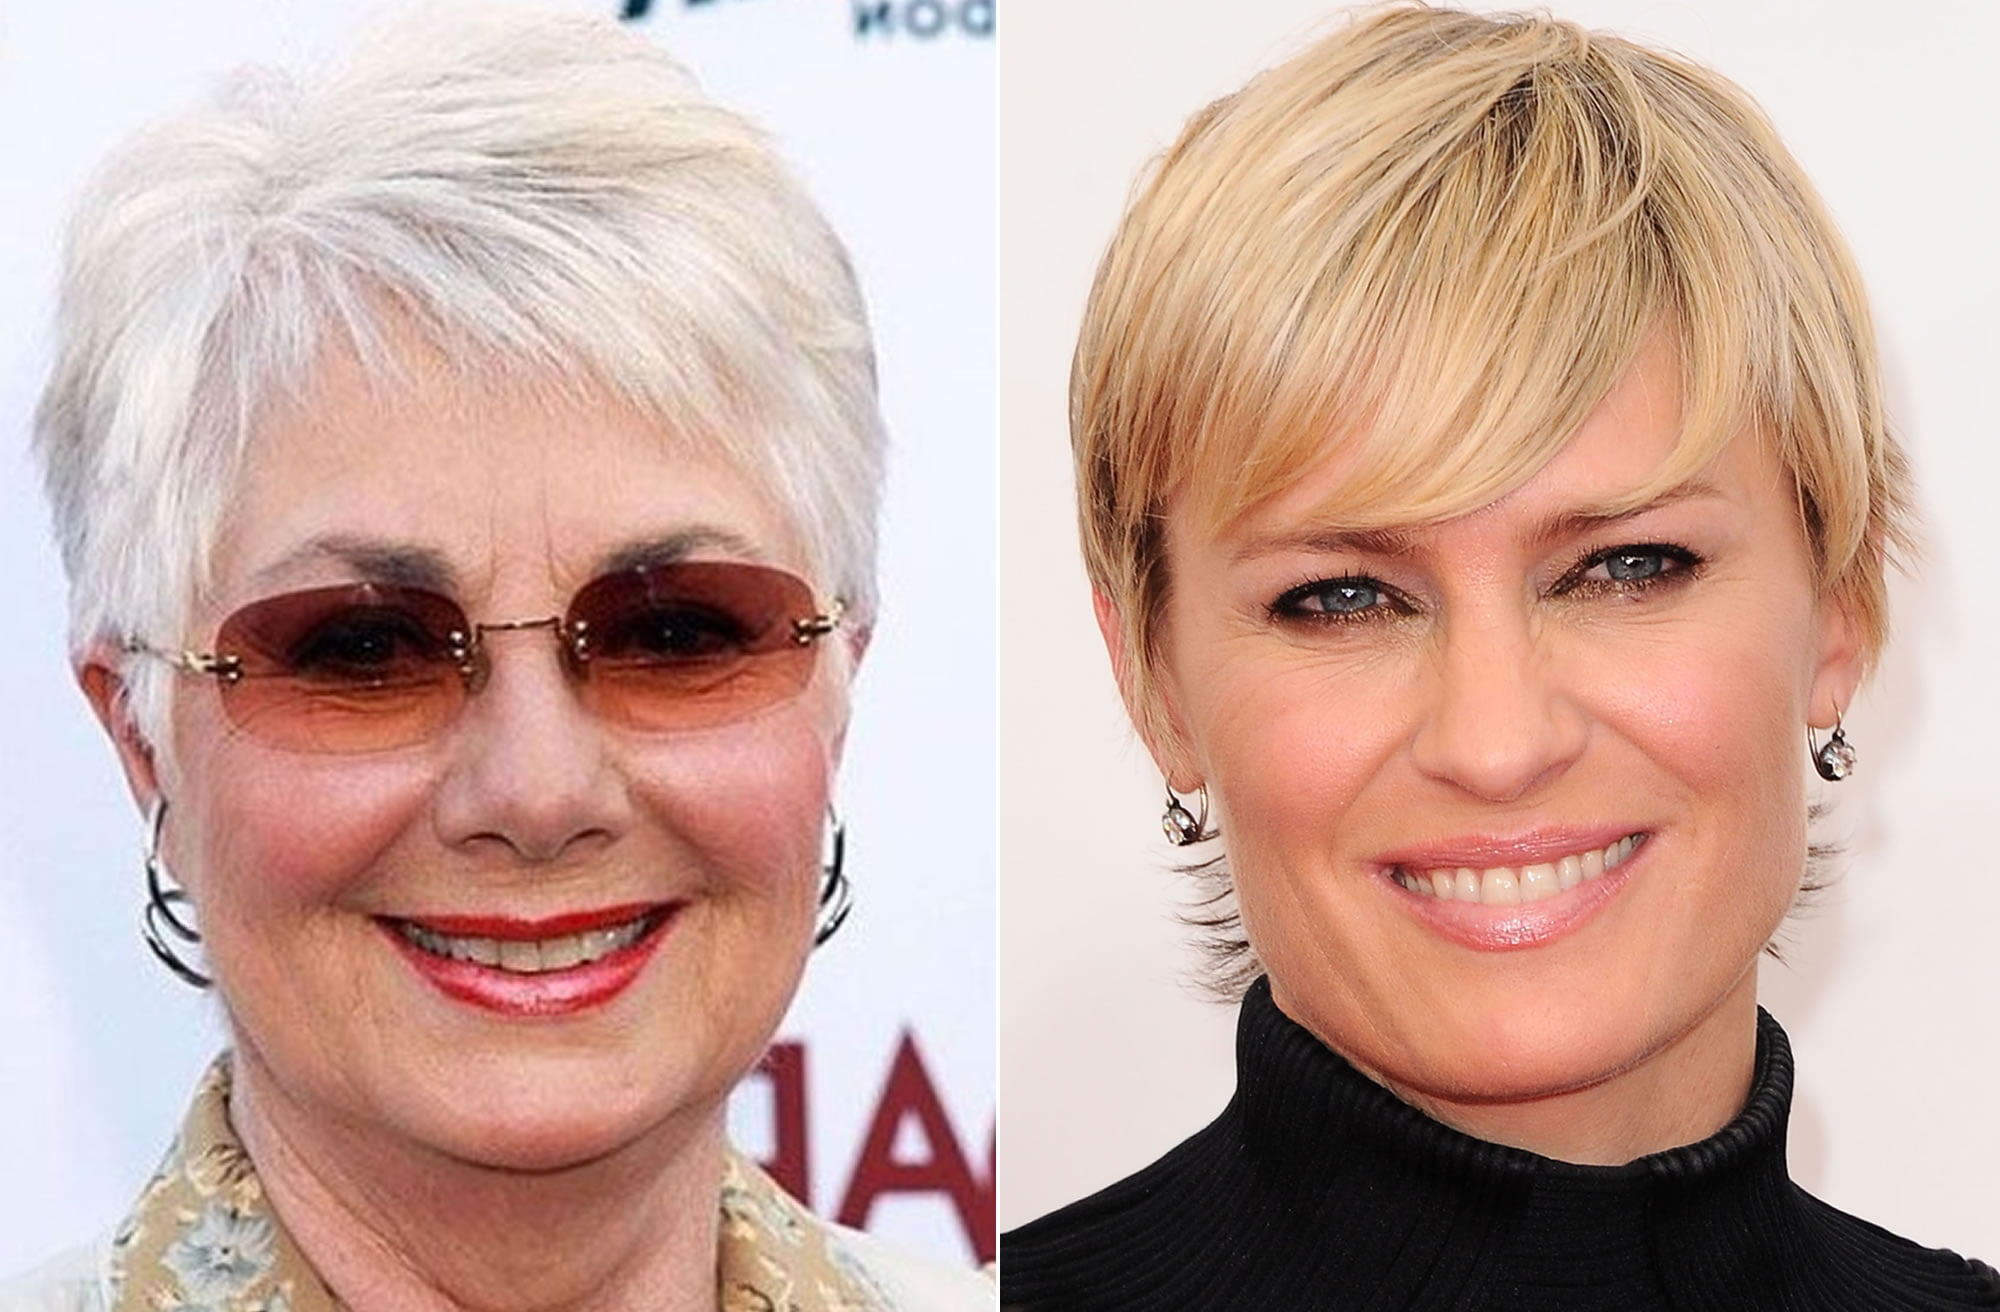 Short Pixie Haircut And Hairstyles For Older Women For